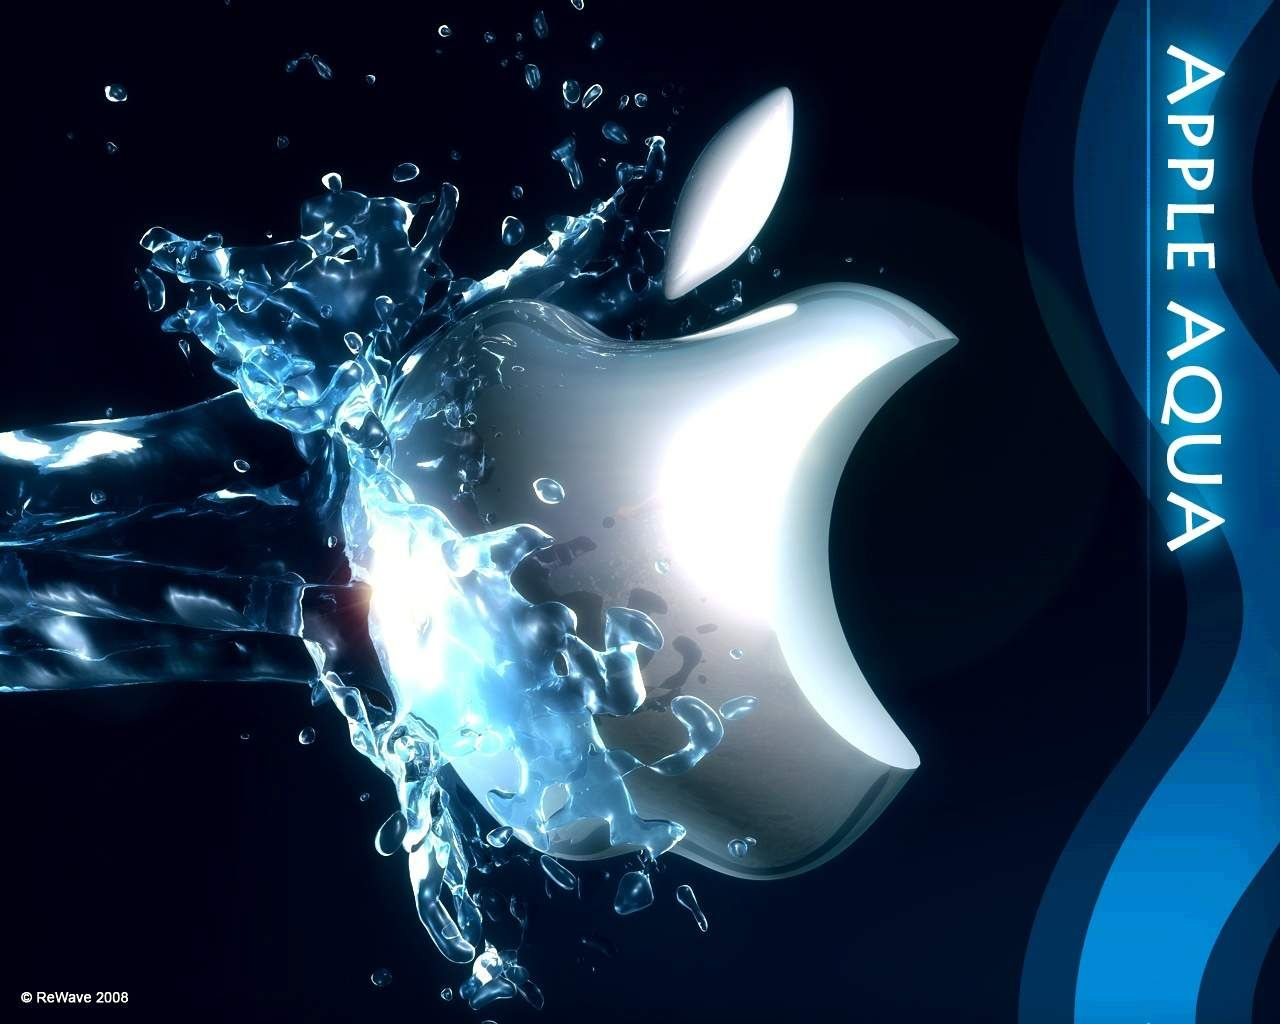 Animated Desktop Backgrounds Mac Aplle Free Download Apple Logo